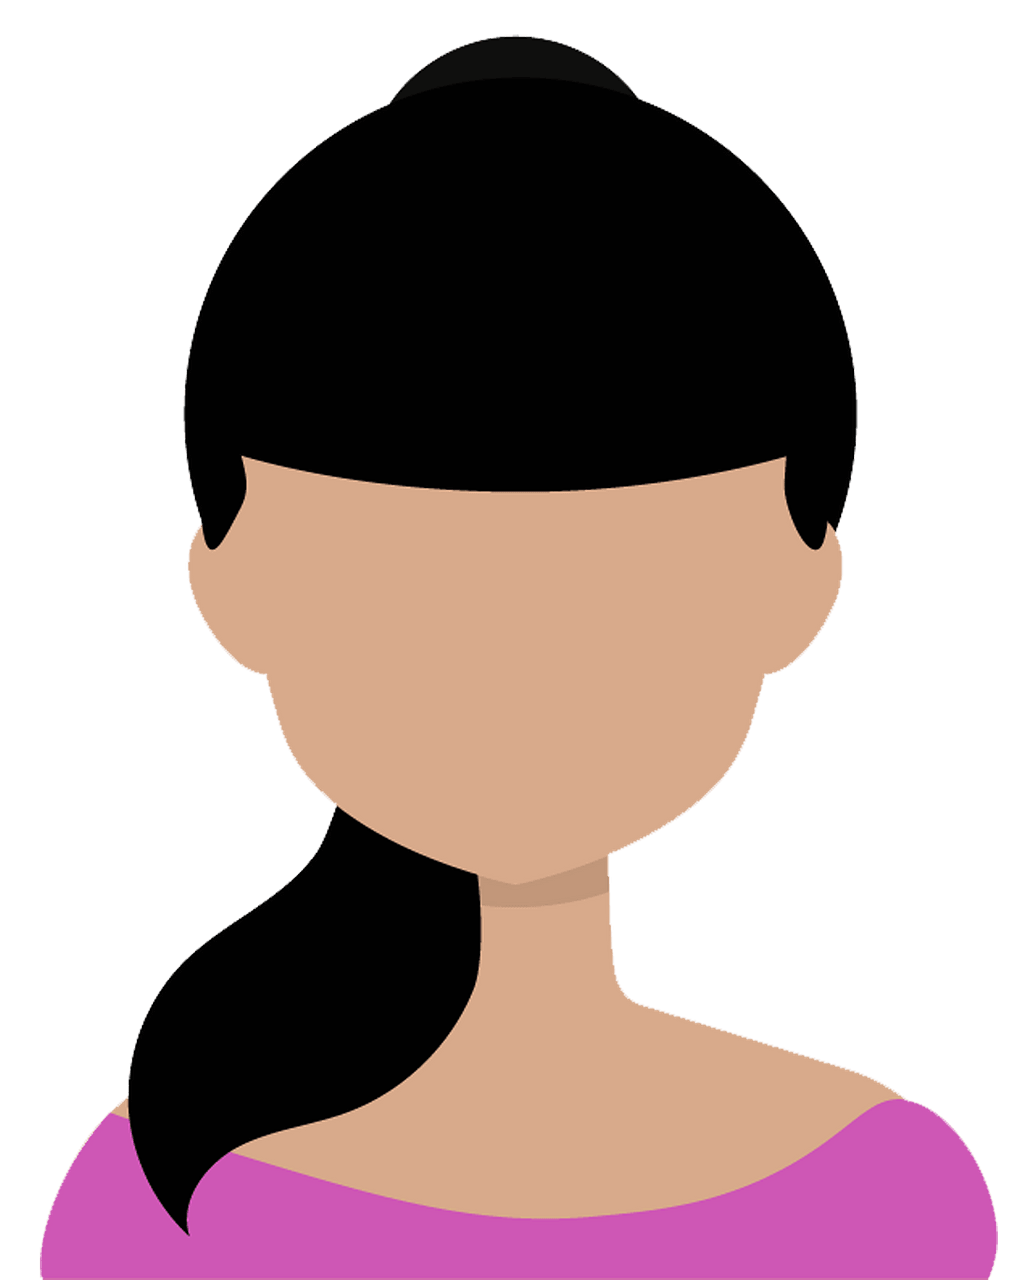 Girl avatar clipart. Free download..